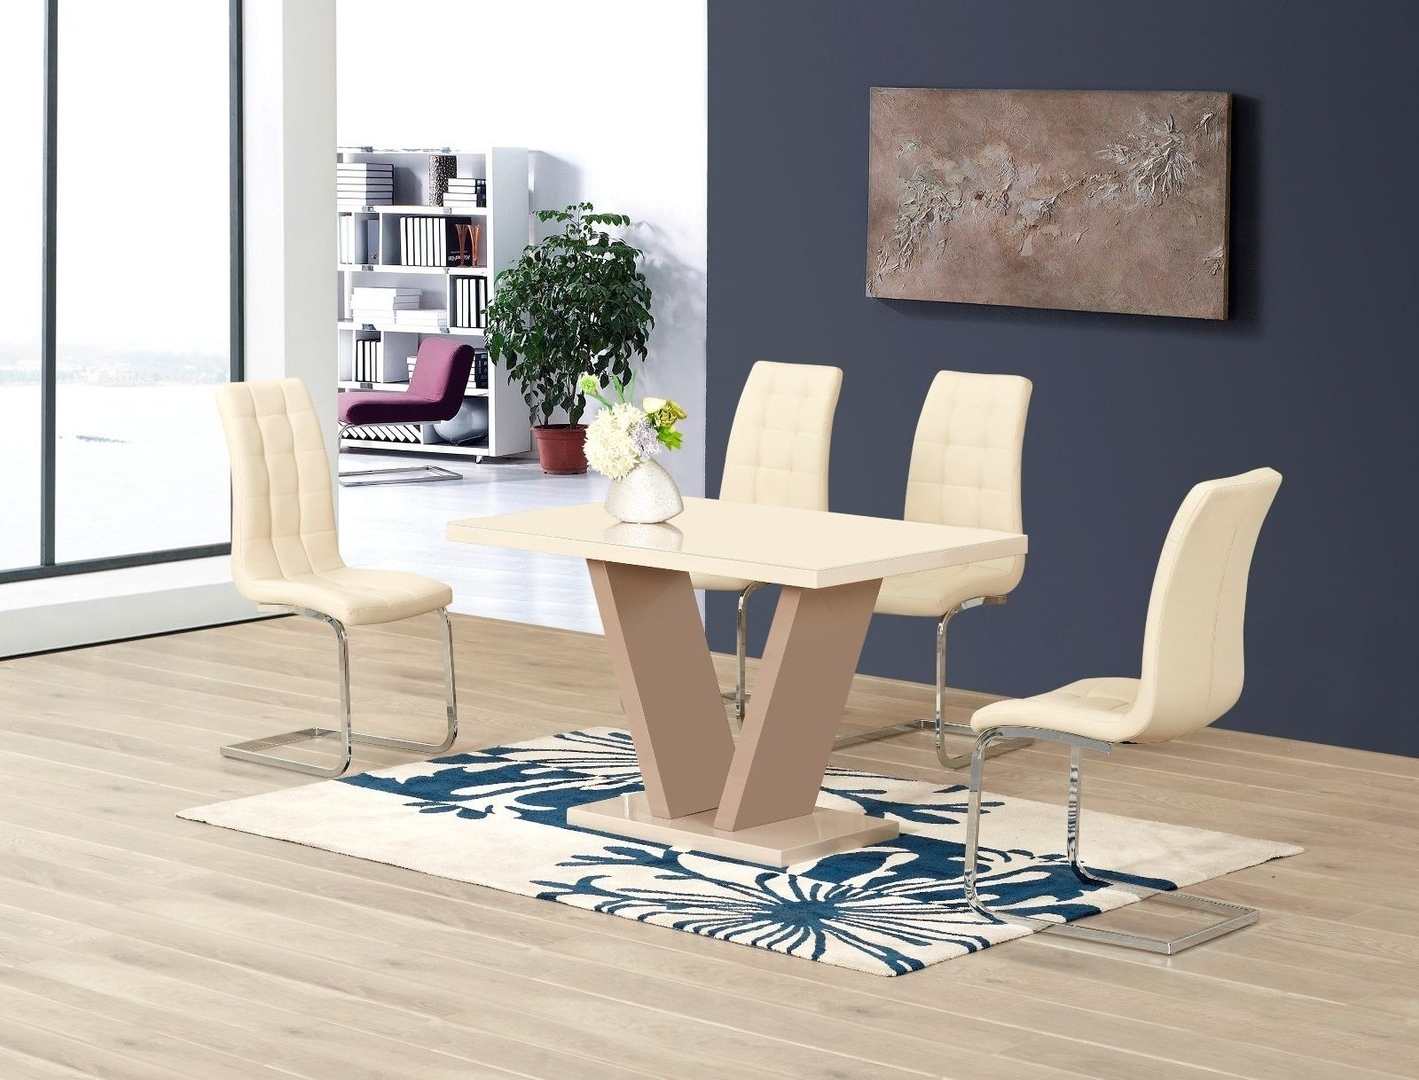 Cream High Gloss Glass Dining Table And 6 Chairs – Homegenies Within Favorite Glass Dining Tables With 6 Chairs (View 9 of 25)